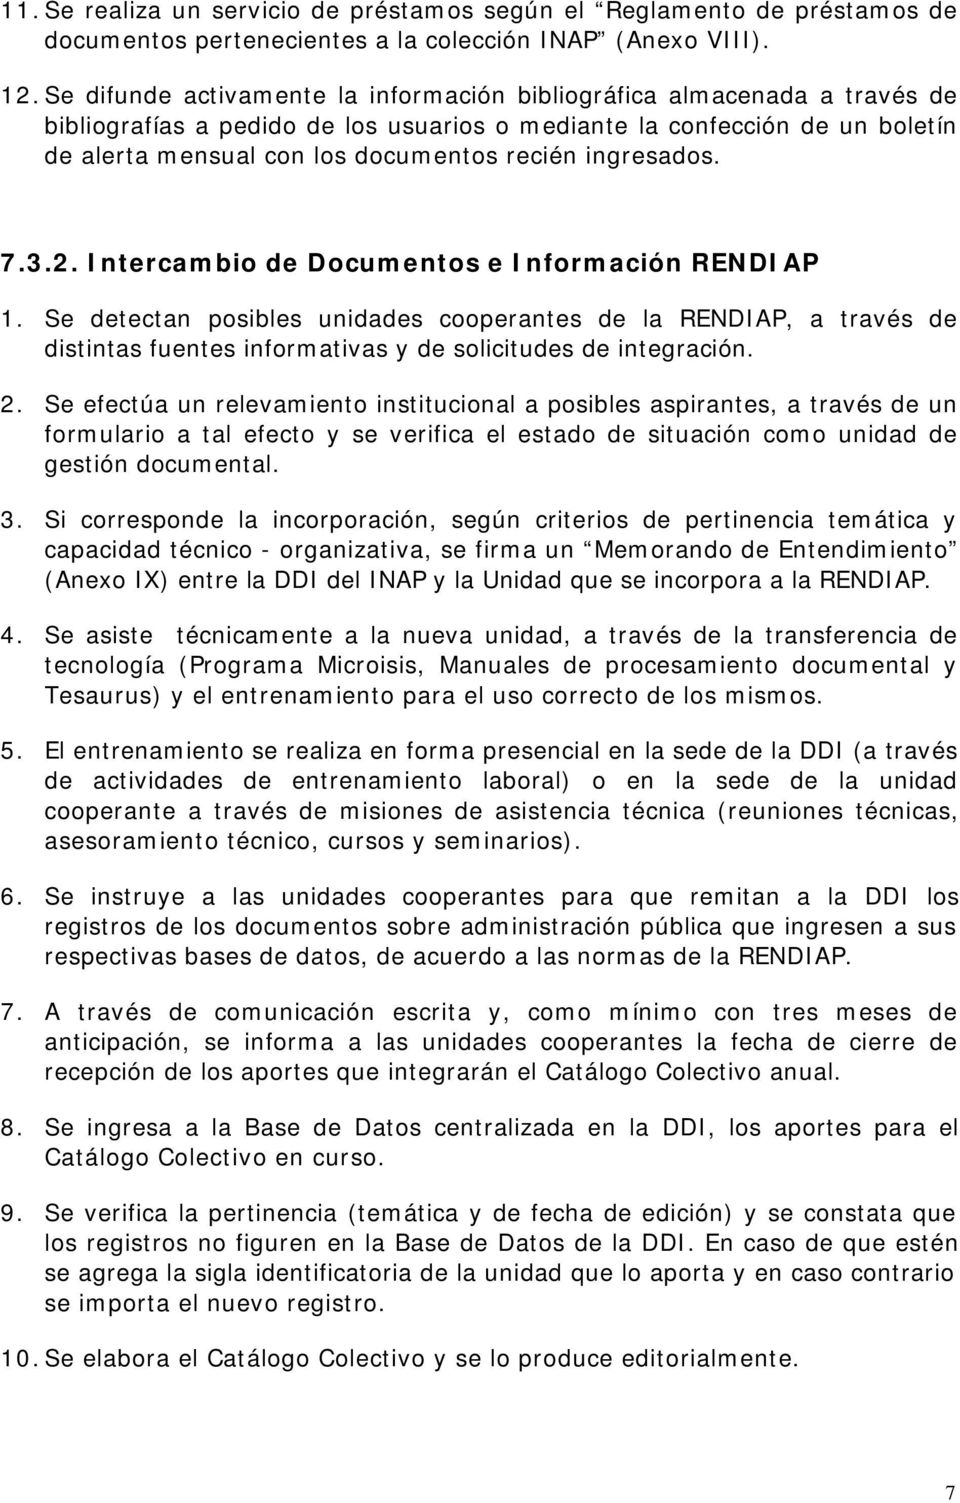 ingresados. 7.3.2. Intercambio de Documentos e Información RENDIAP 1.